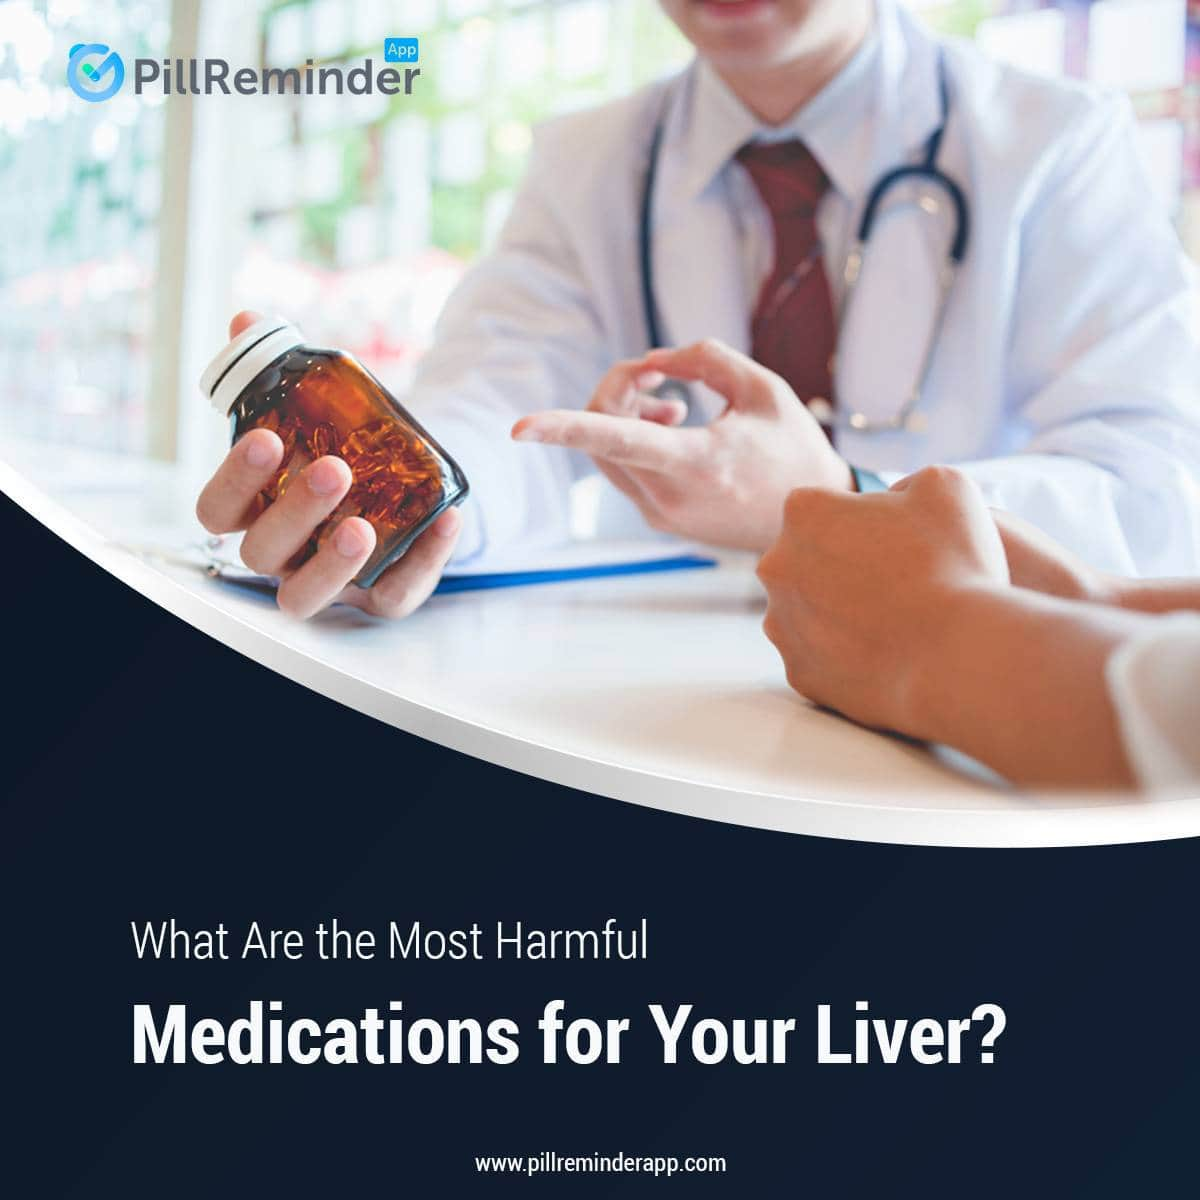 What Are the Most Harmful Medications for Your Liver